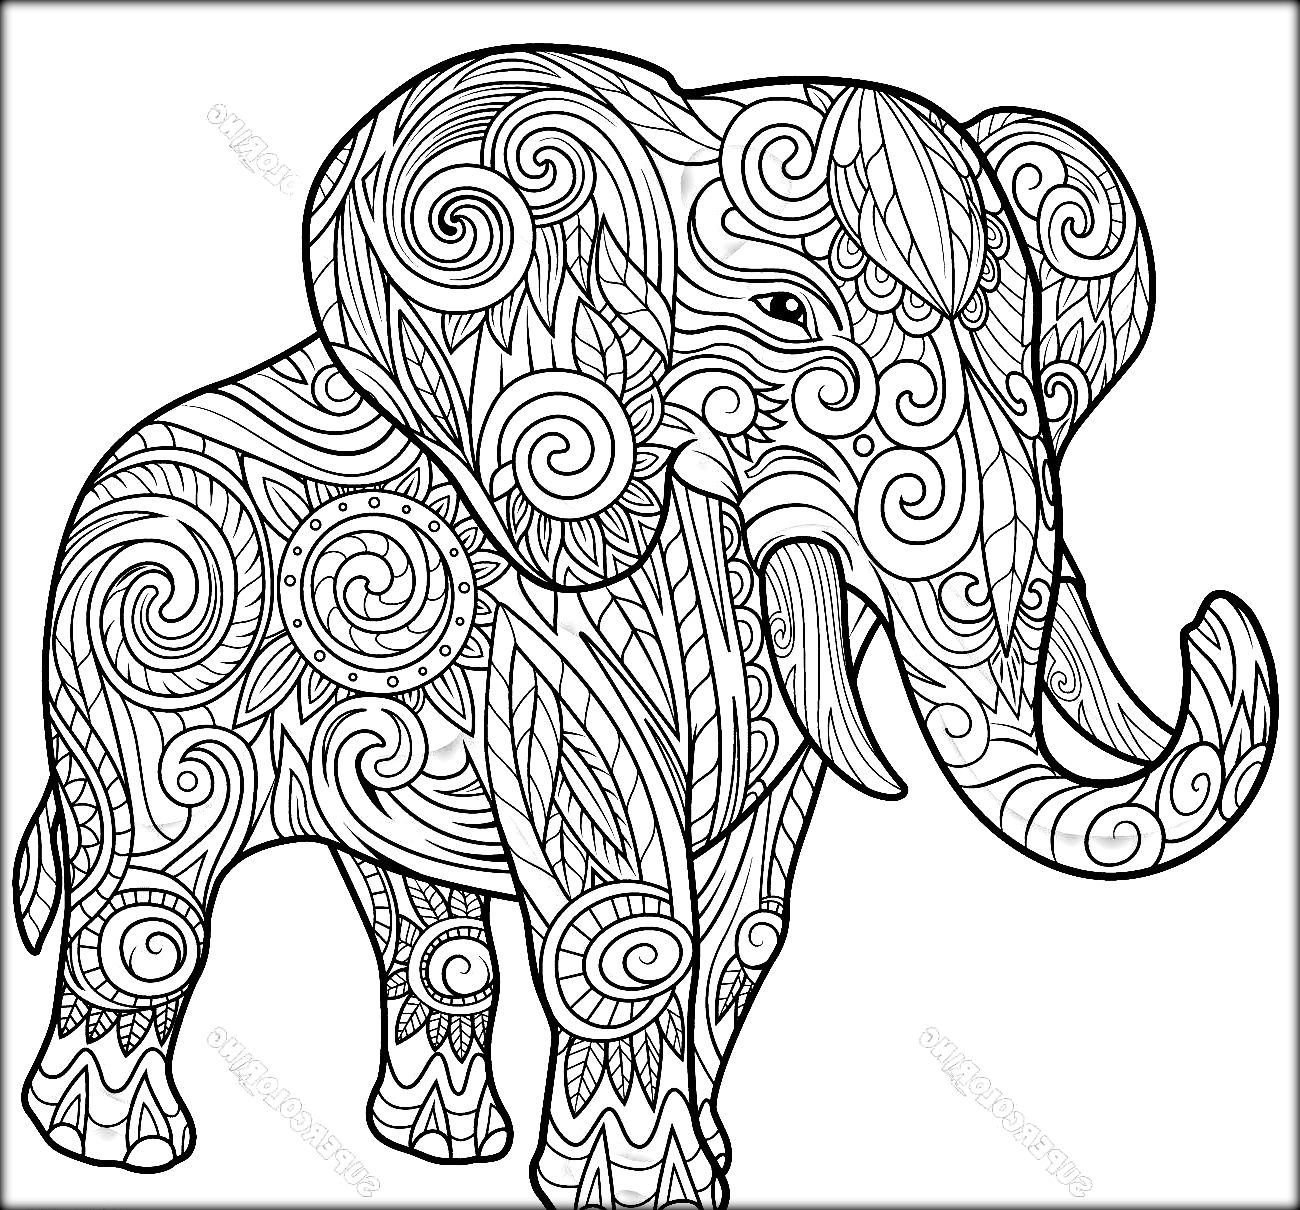 Elephant Tribal Drawing at GetDrawings.com | Free for personal use ...